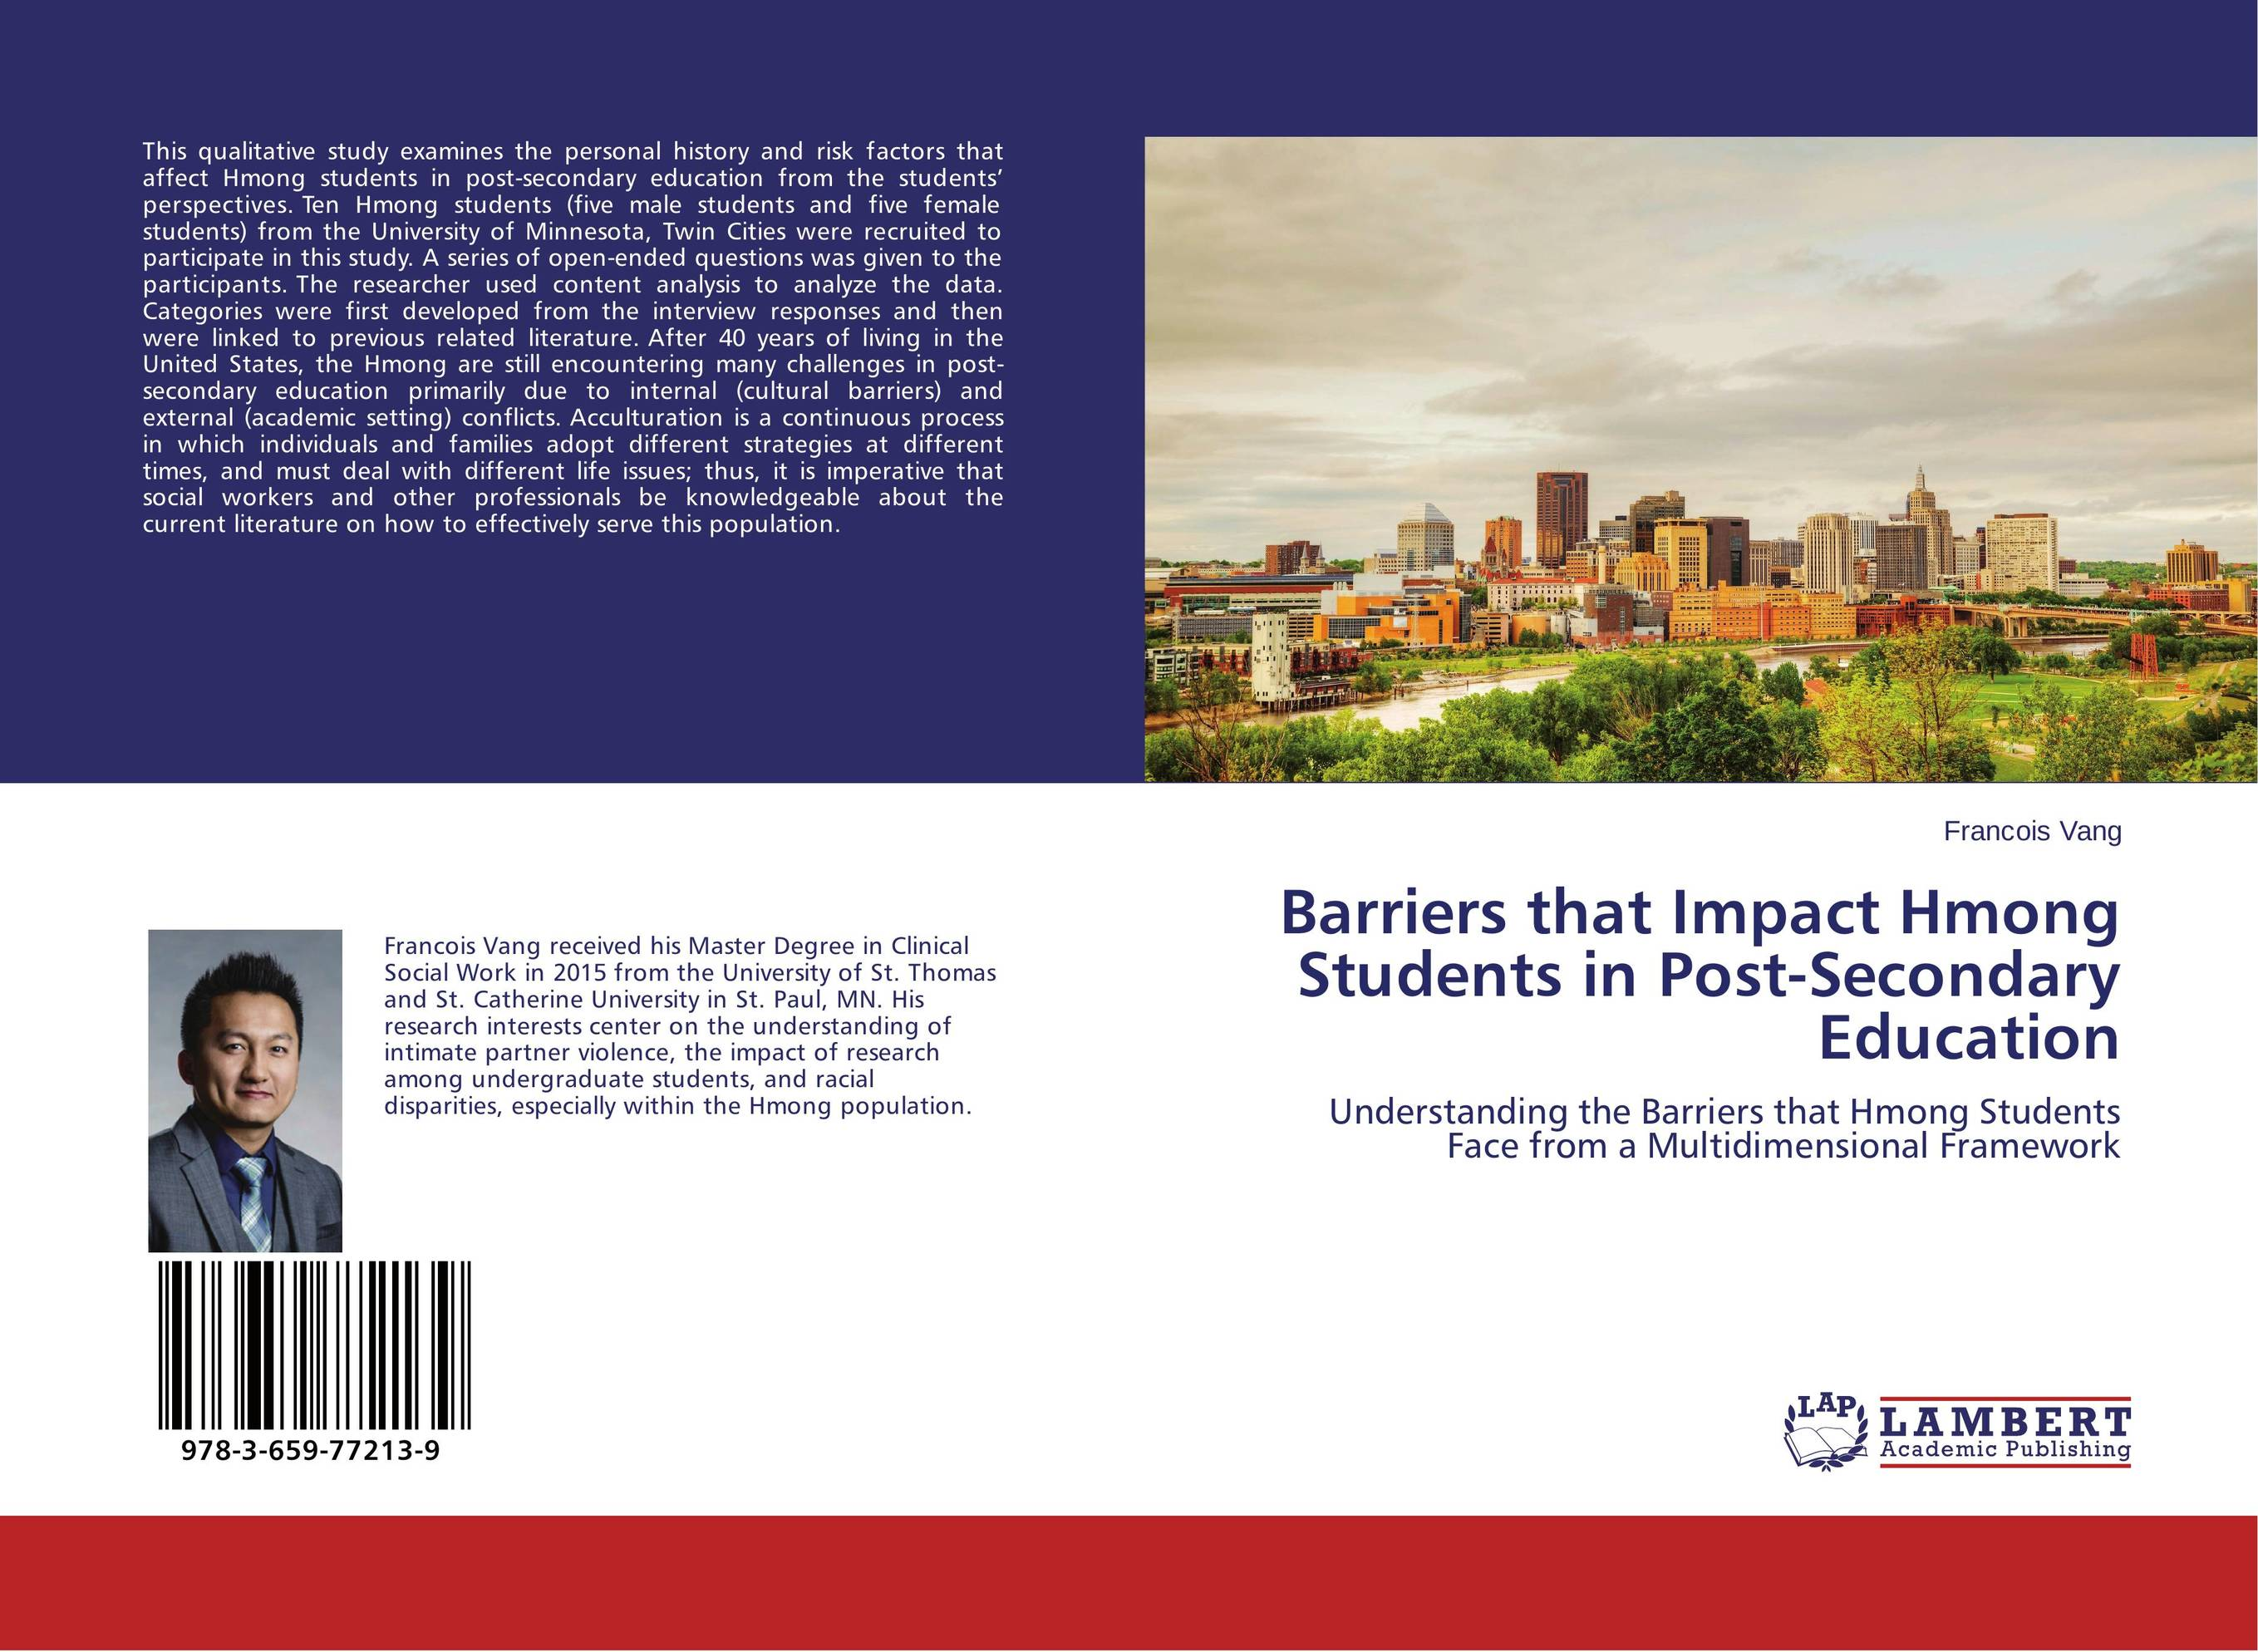 Barriers that Impact Hmong Students in Post-Secondary Education prostate screening motivating factors and barriers